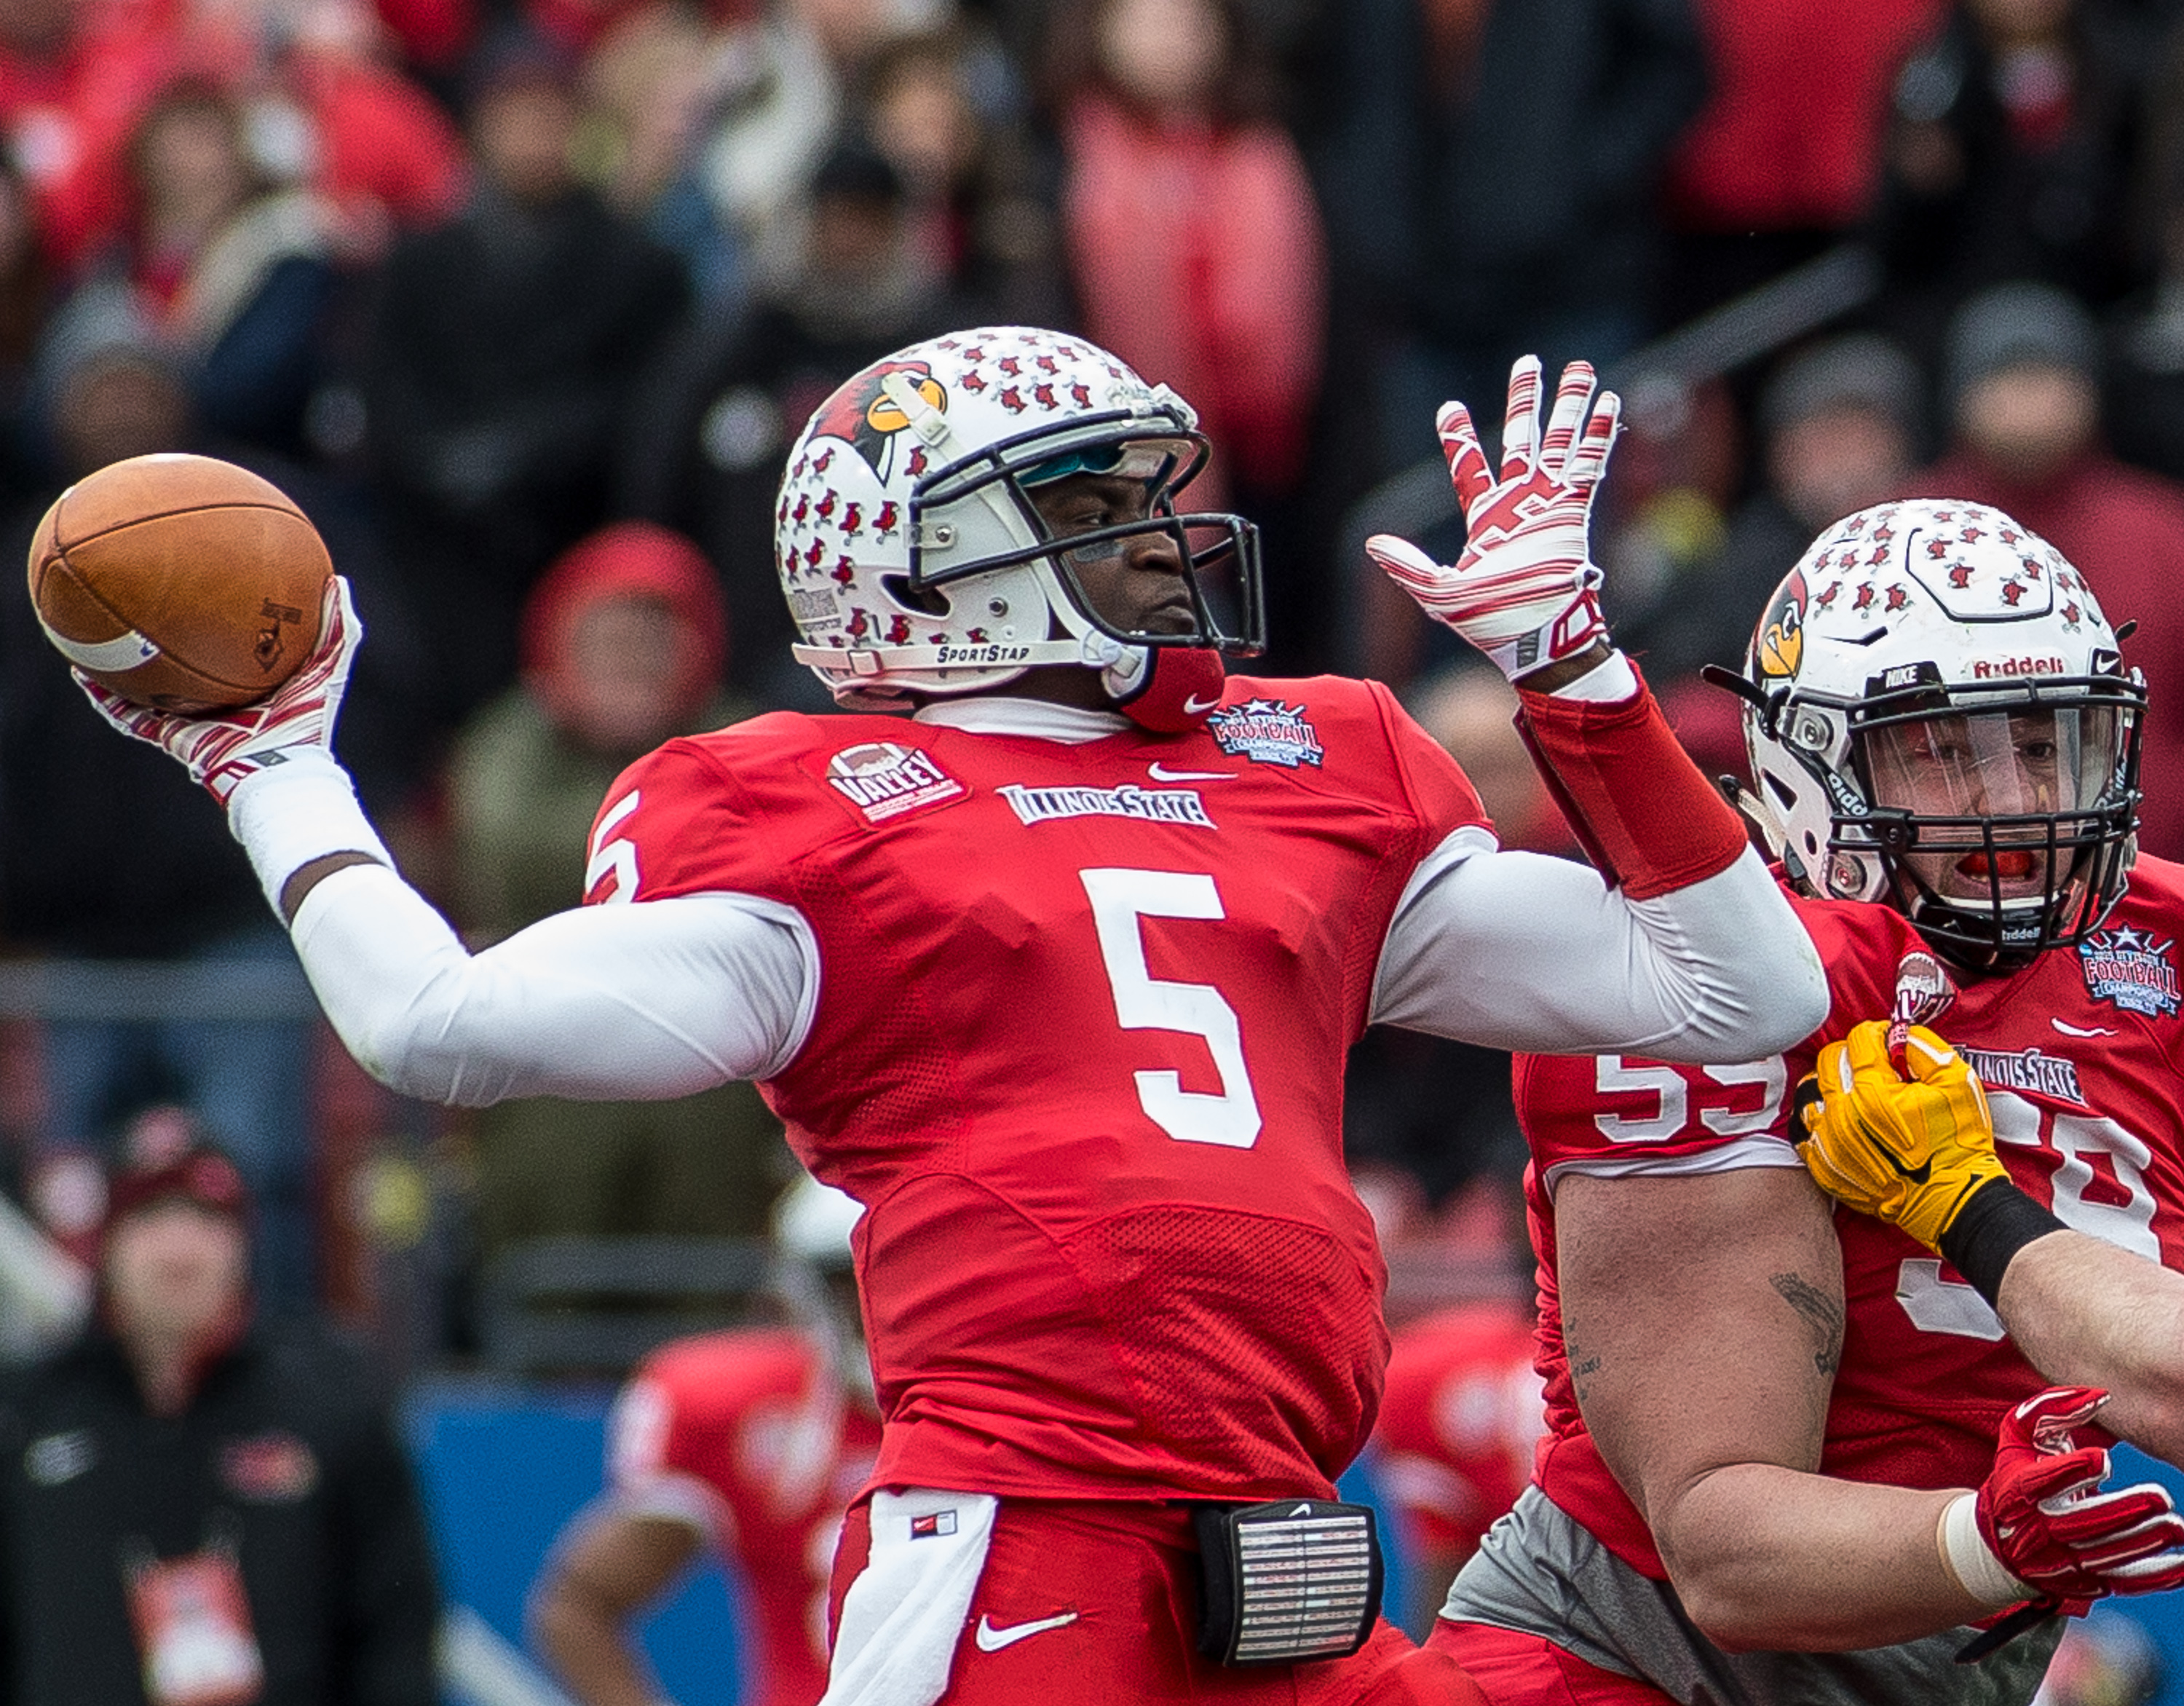 DALLAS, TX - JANUARY 10: North Dakota State University and Illinois State University compete for the 2015 NCAA FCS Football Championship at Toyota Stadium in Frisco on Jan. 10, 2015 in Frisco TX. Photo by Matt Garnett / Rick Yeatts Photography